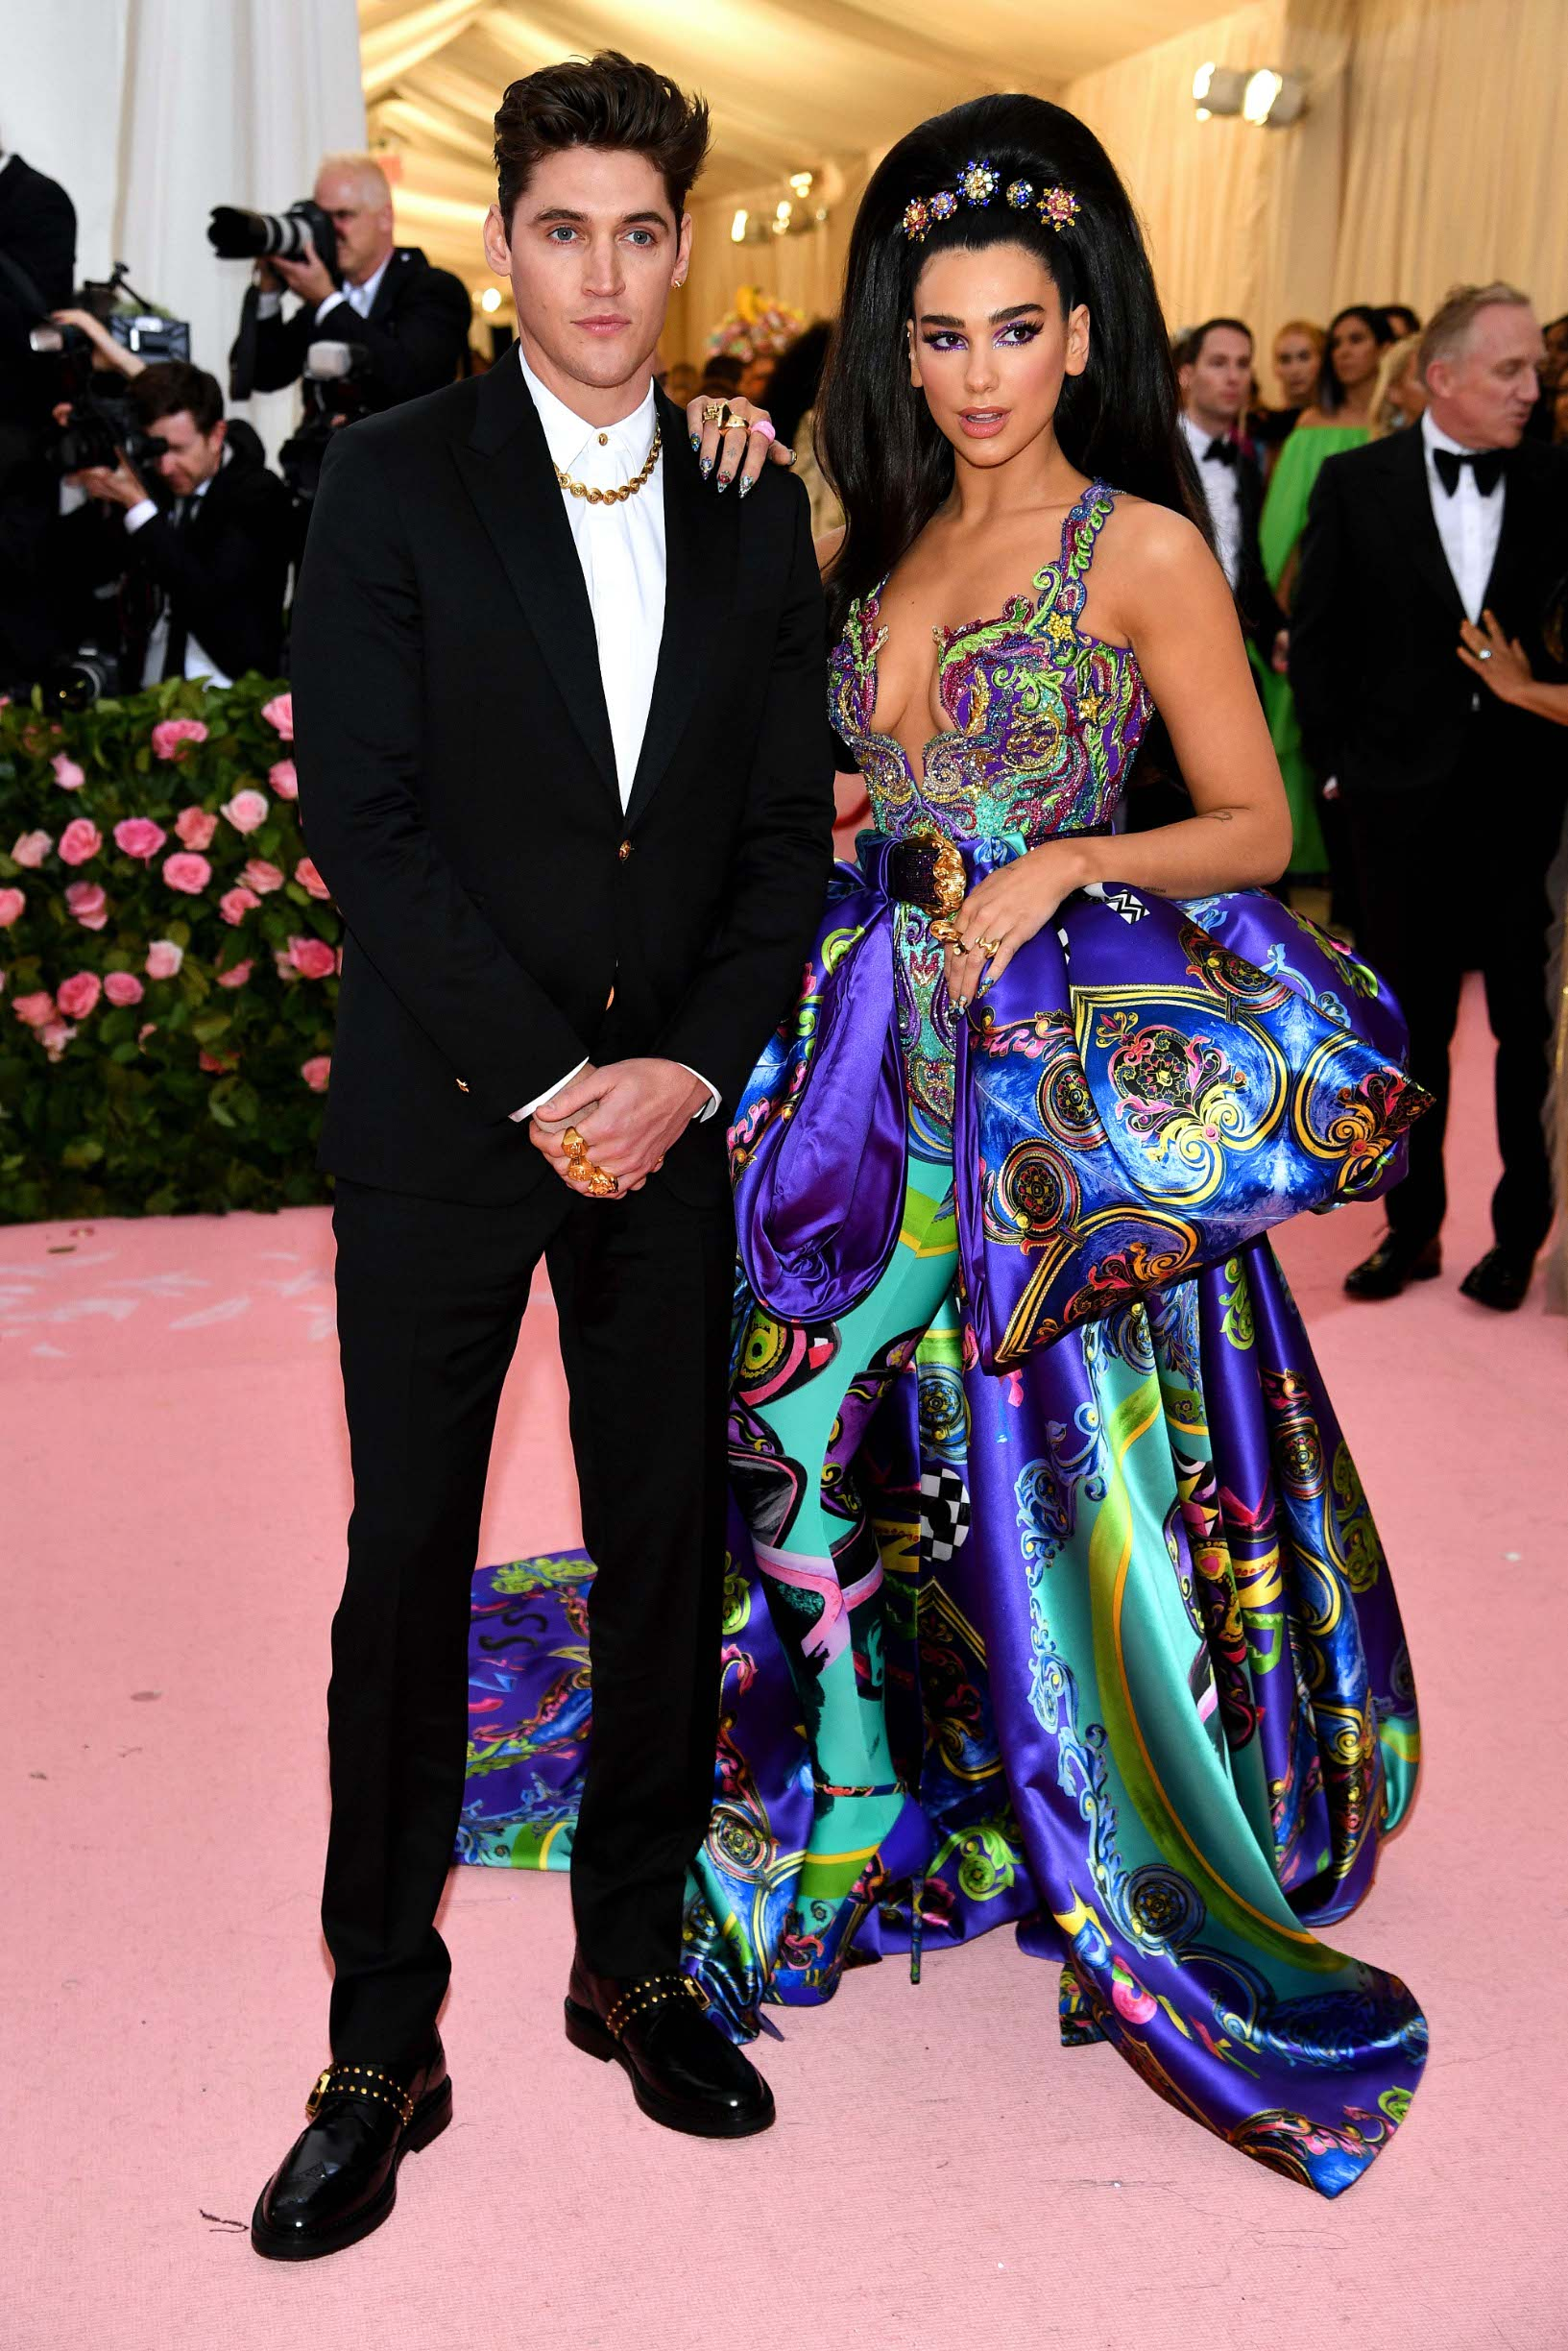 NEW YORK, NEW YORK - MAY 06: Isaac Carew and Dua Lipa attends The 2019 Met Gala Celebrating Camp: Notes on Fashion at Metropolitan Museum of Art on May 06, 2019 in New York City. (Photo by Dimitrios Kambouris/Getty Images for The Met Museum/Vogue)